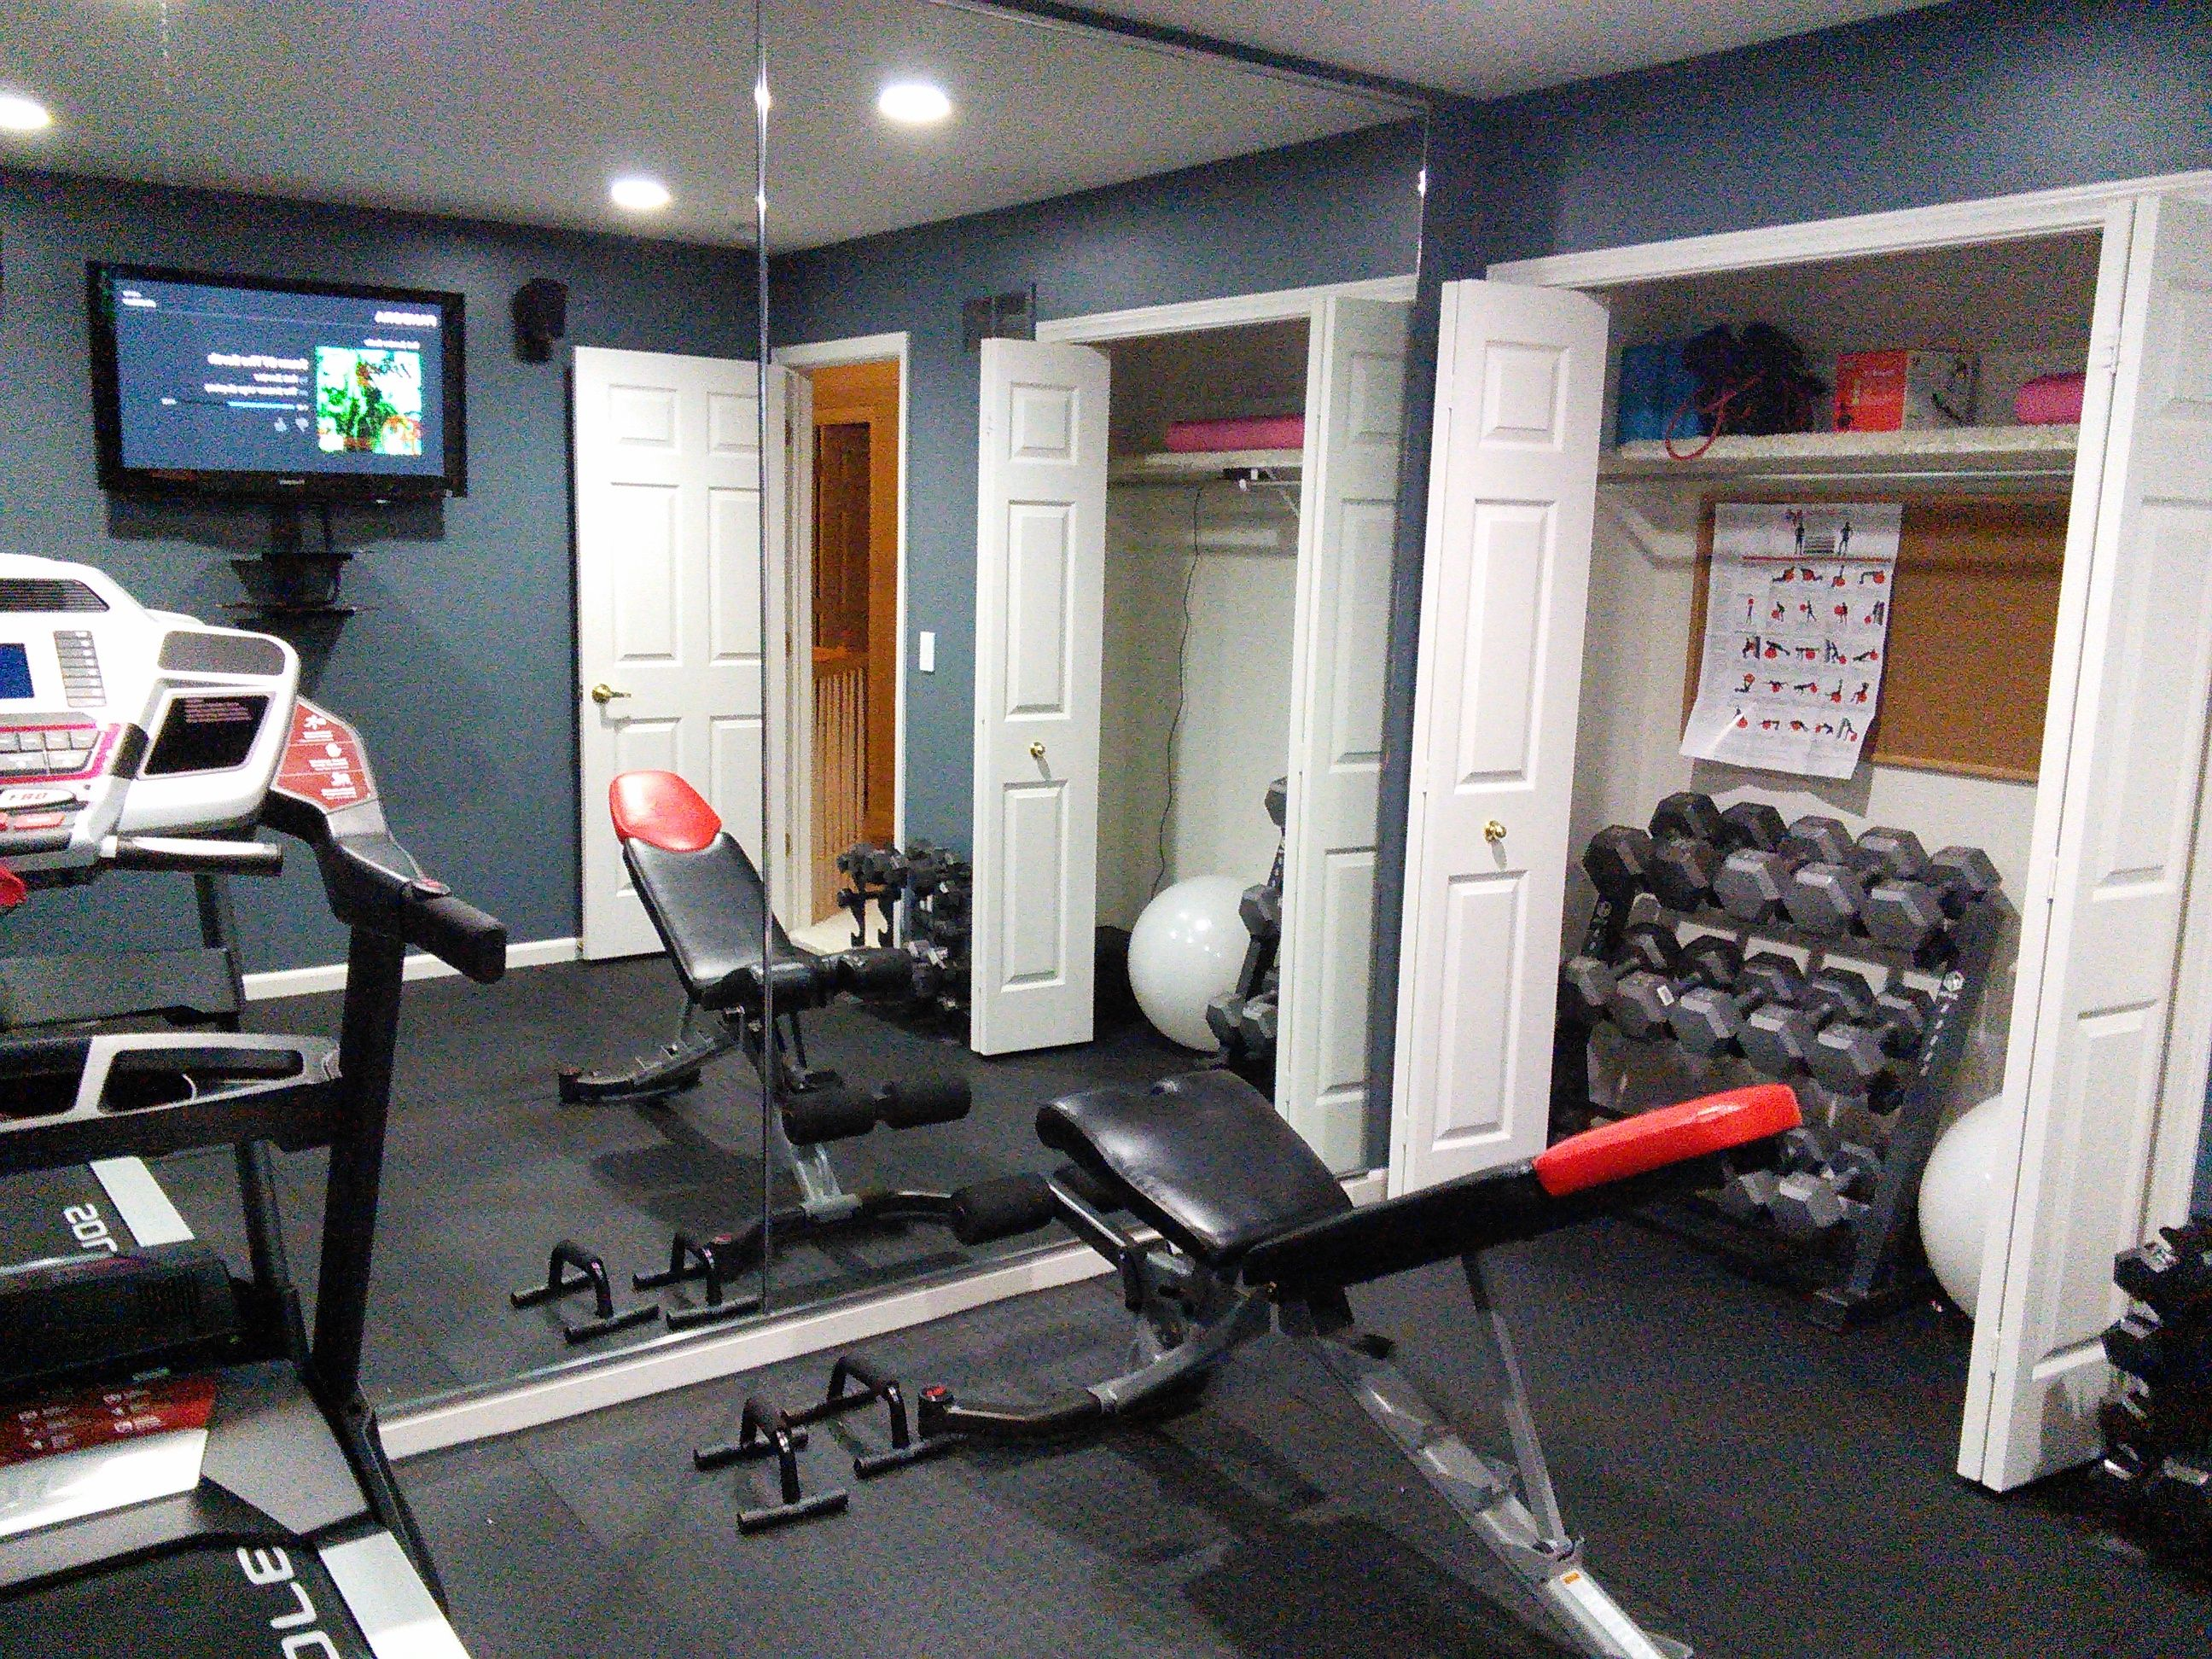 make your home gym work in a small room - movable bench, foldable  treadmill, TV/speakers off floor, dumbbells/accessories in closet, LED  recess lighting to ...